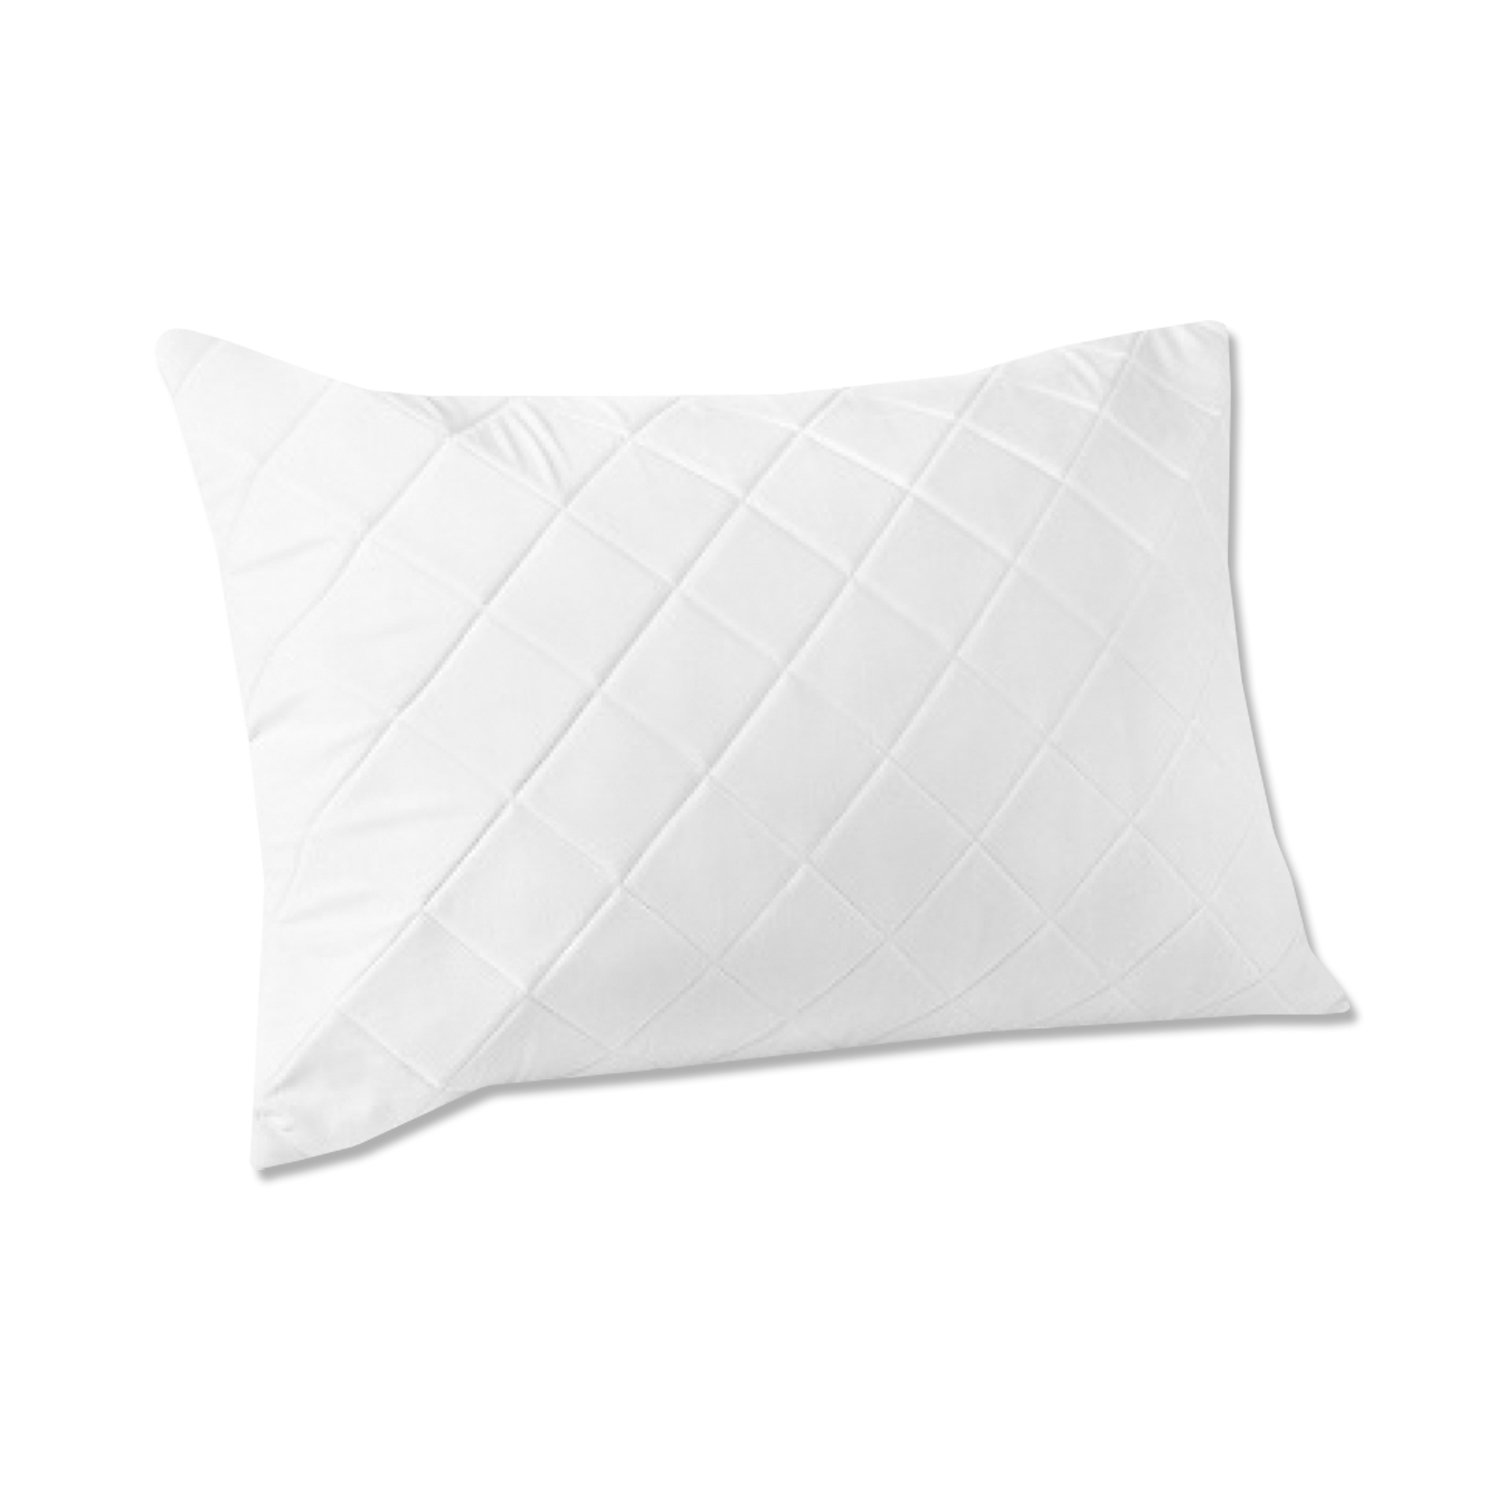 Levinsohn Memory Foam Quilted Pillow Protector, Standard/Queen FRE154XXWHIT10